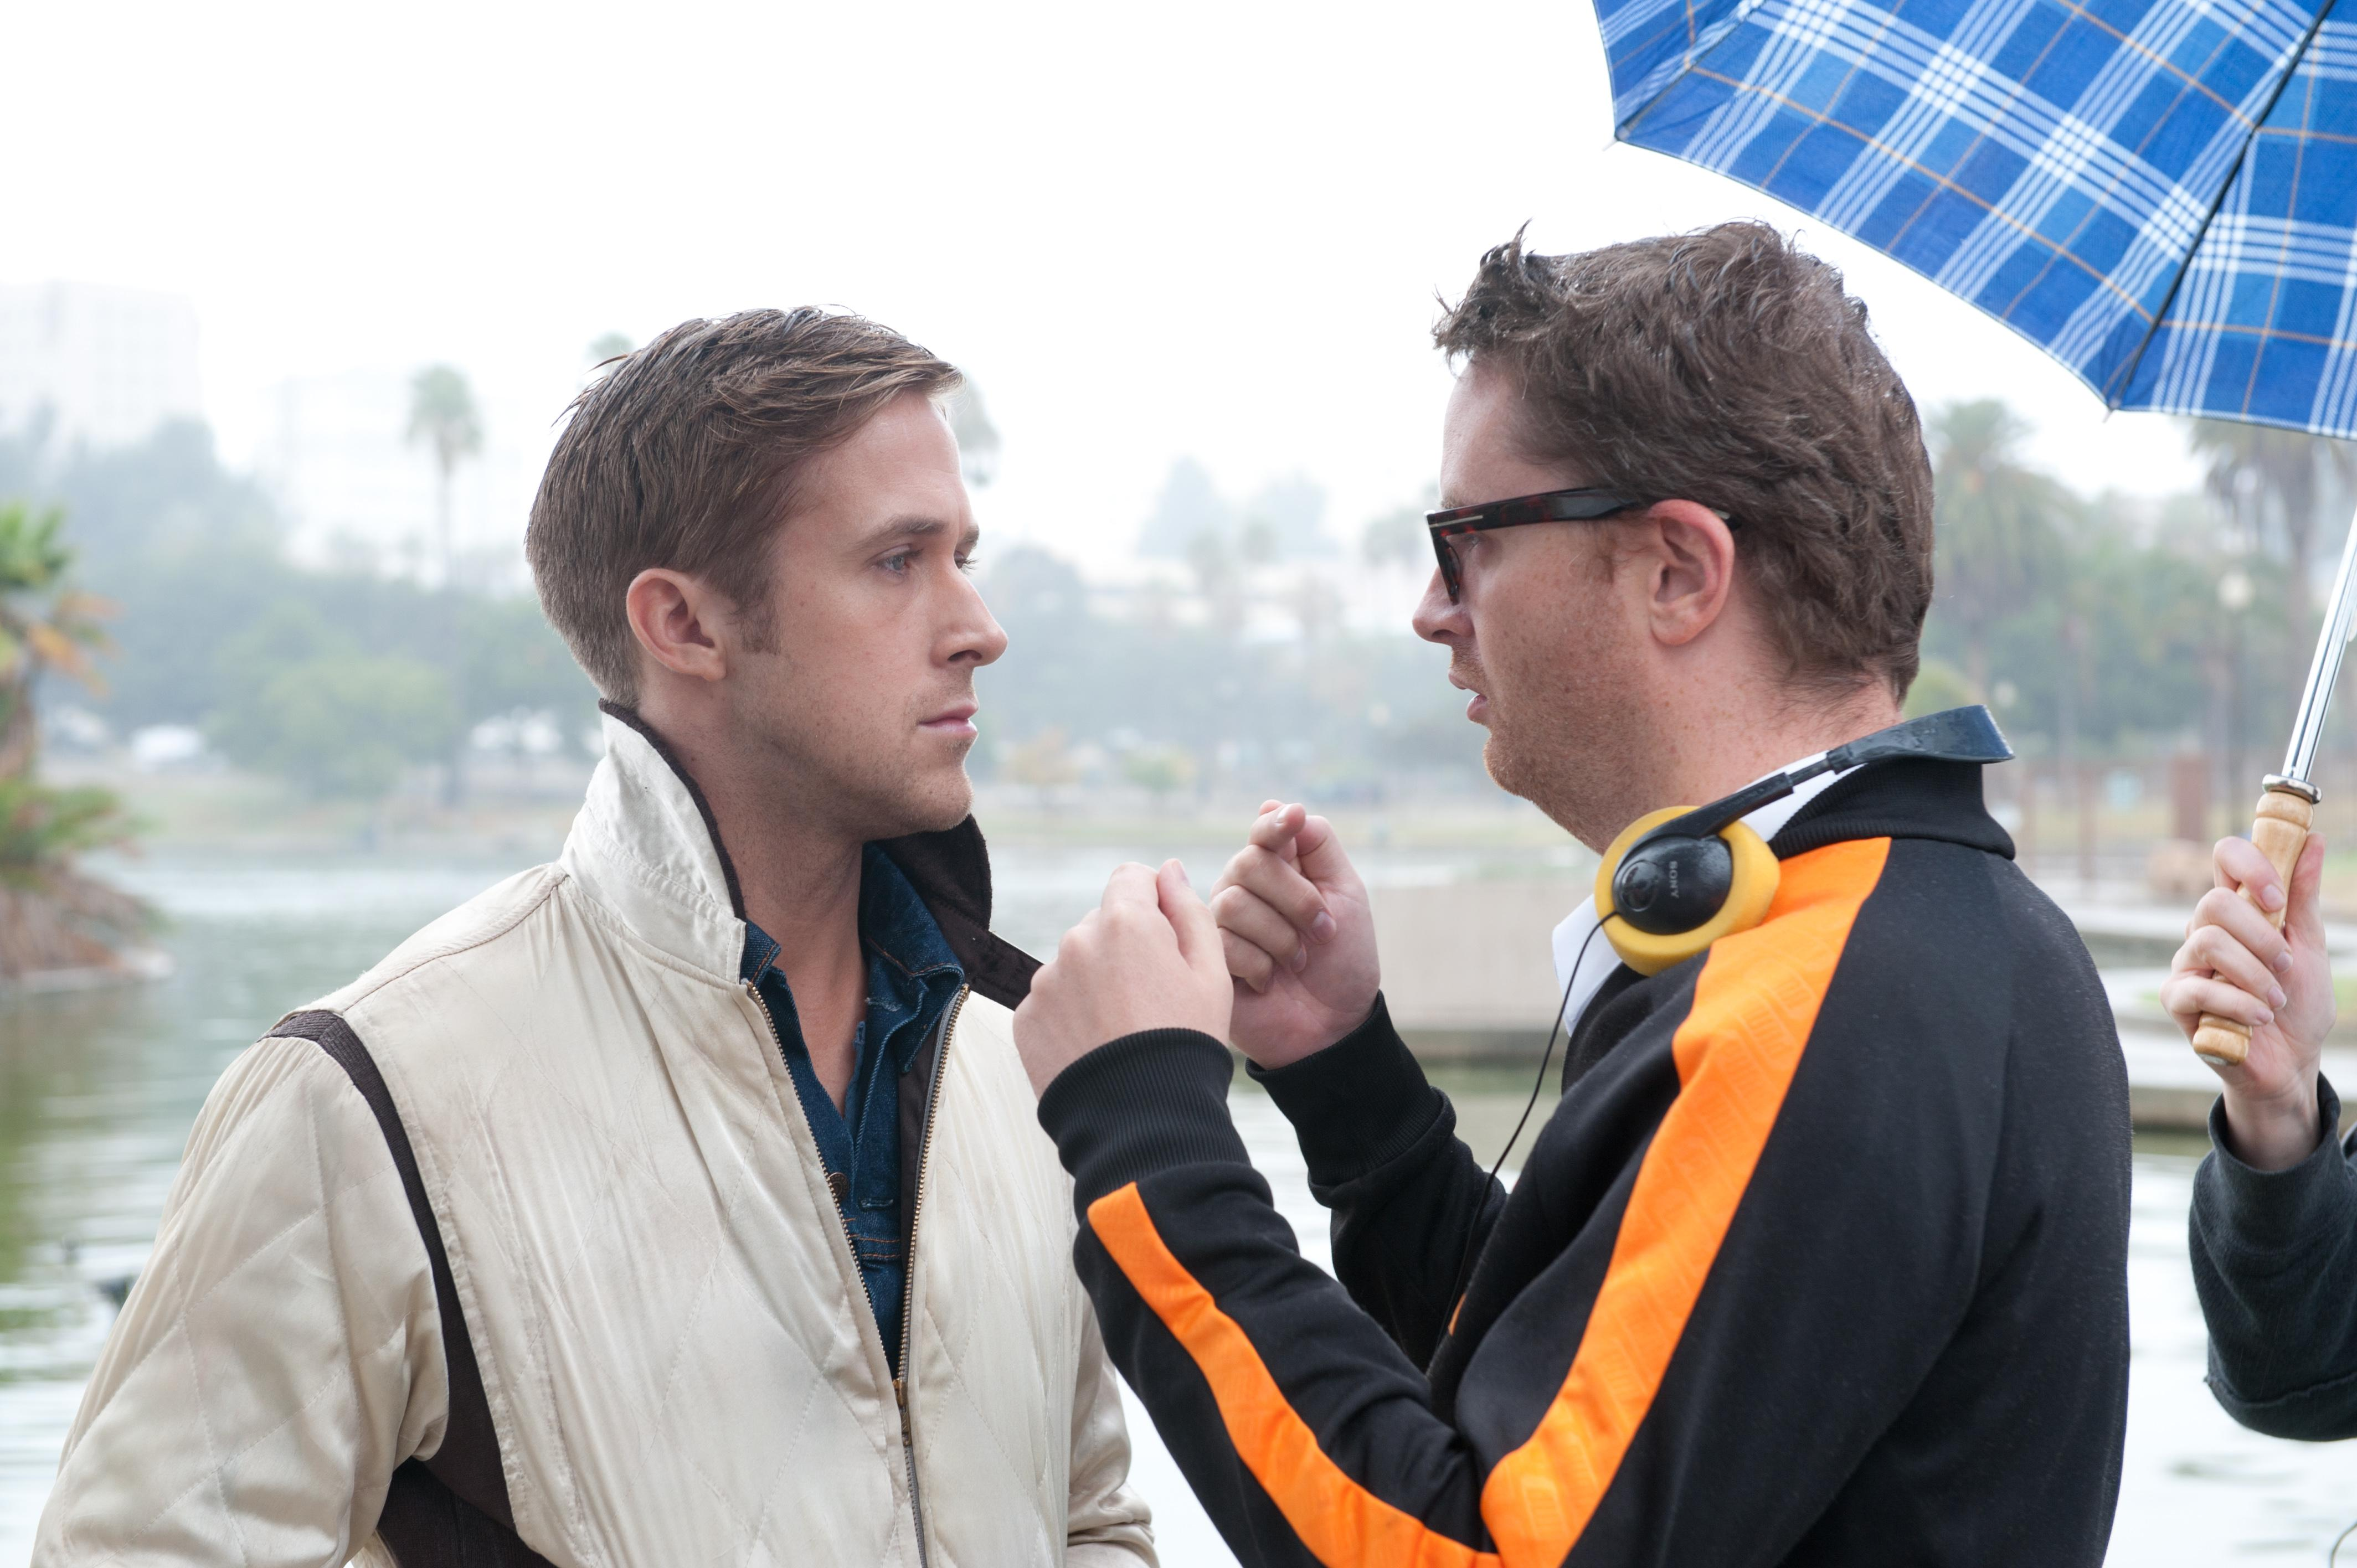 Ryan Gosling Drive movie Nicolas Winding Refn NICOLAS WINDING REFN PAR LAURENT DUROCHE